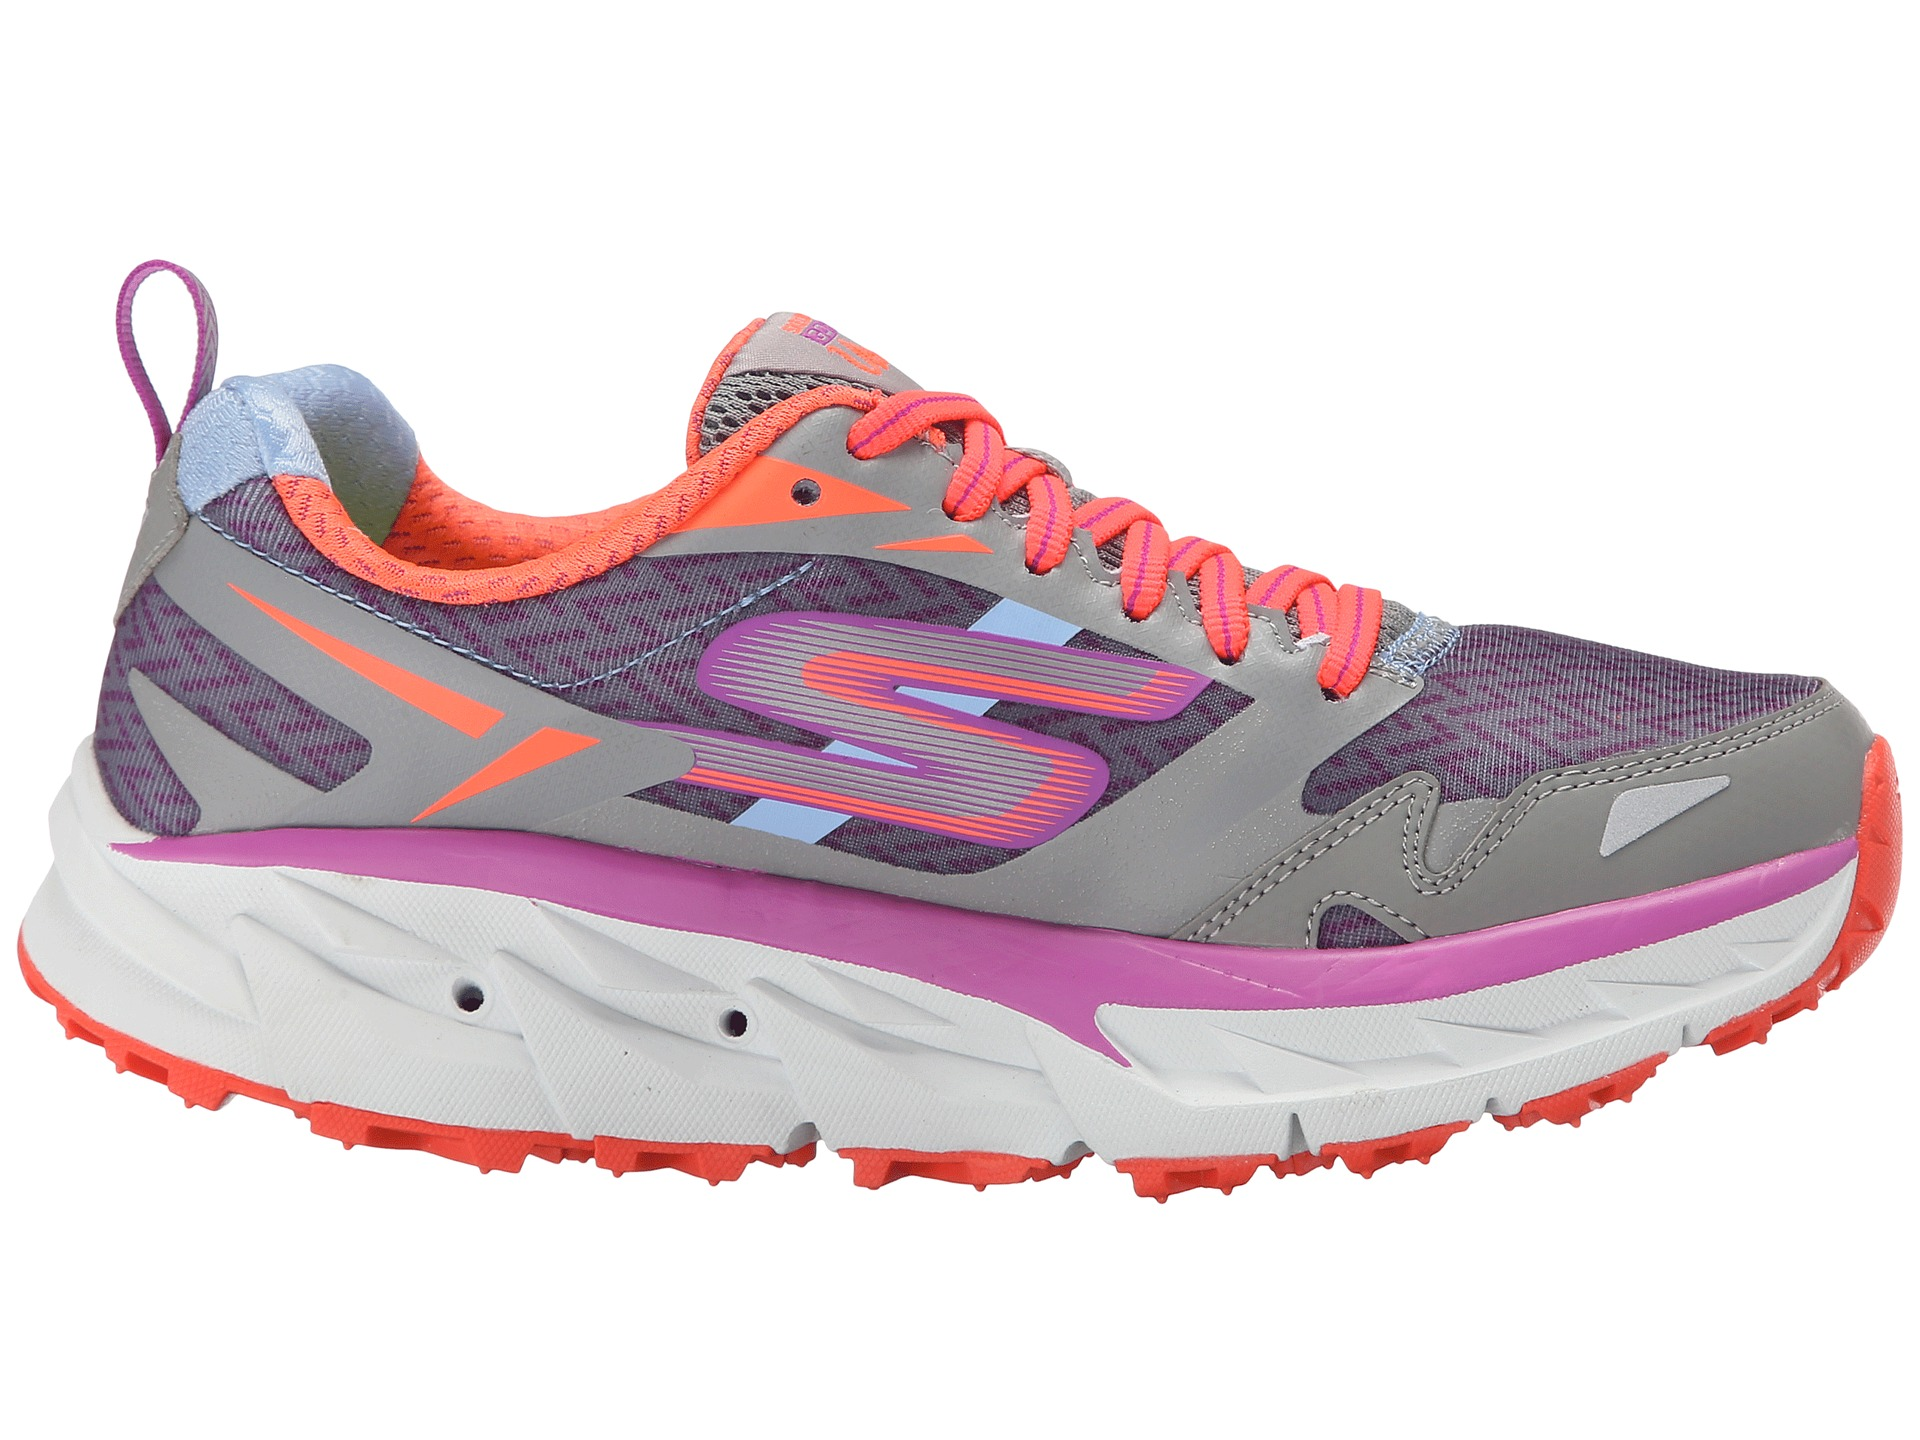 SKECHERS Go Trail Ultra 3 - Zappos.com Free Shipping BOTH Ways